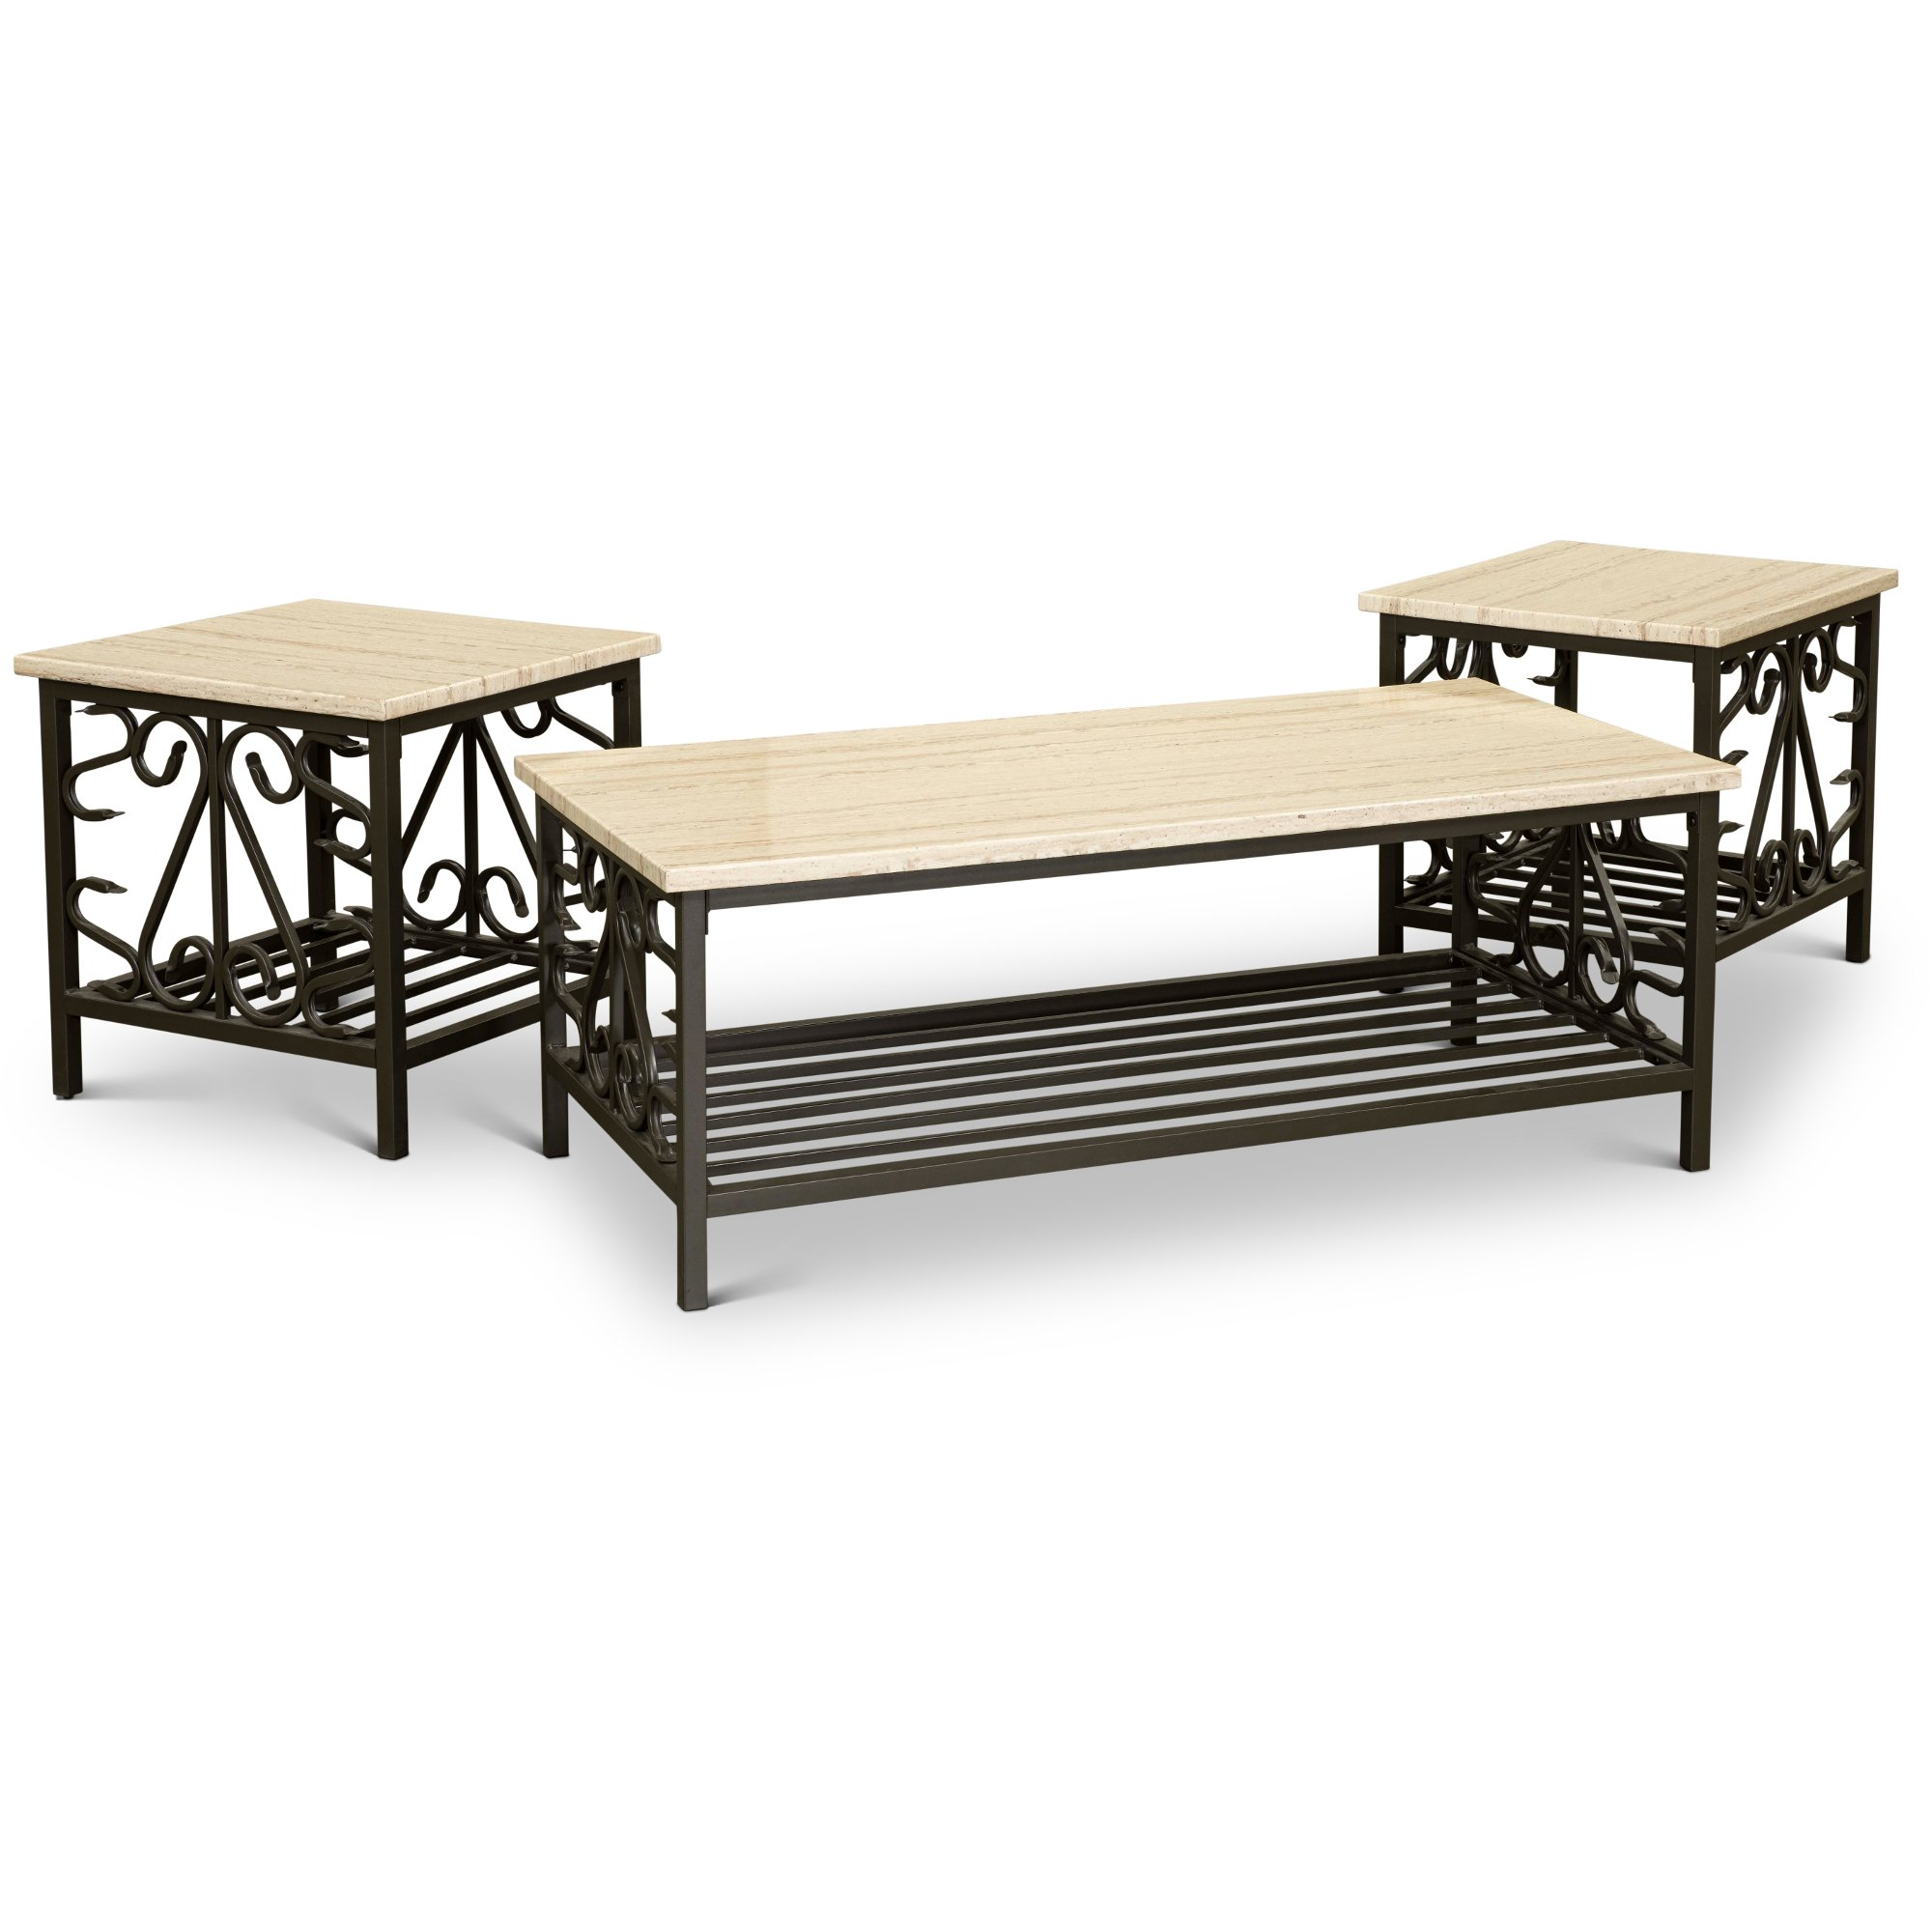 Marble top 3 piece coffee table set living room table for 3 piece living room furniture set